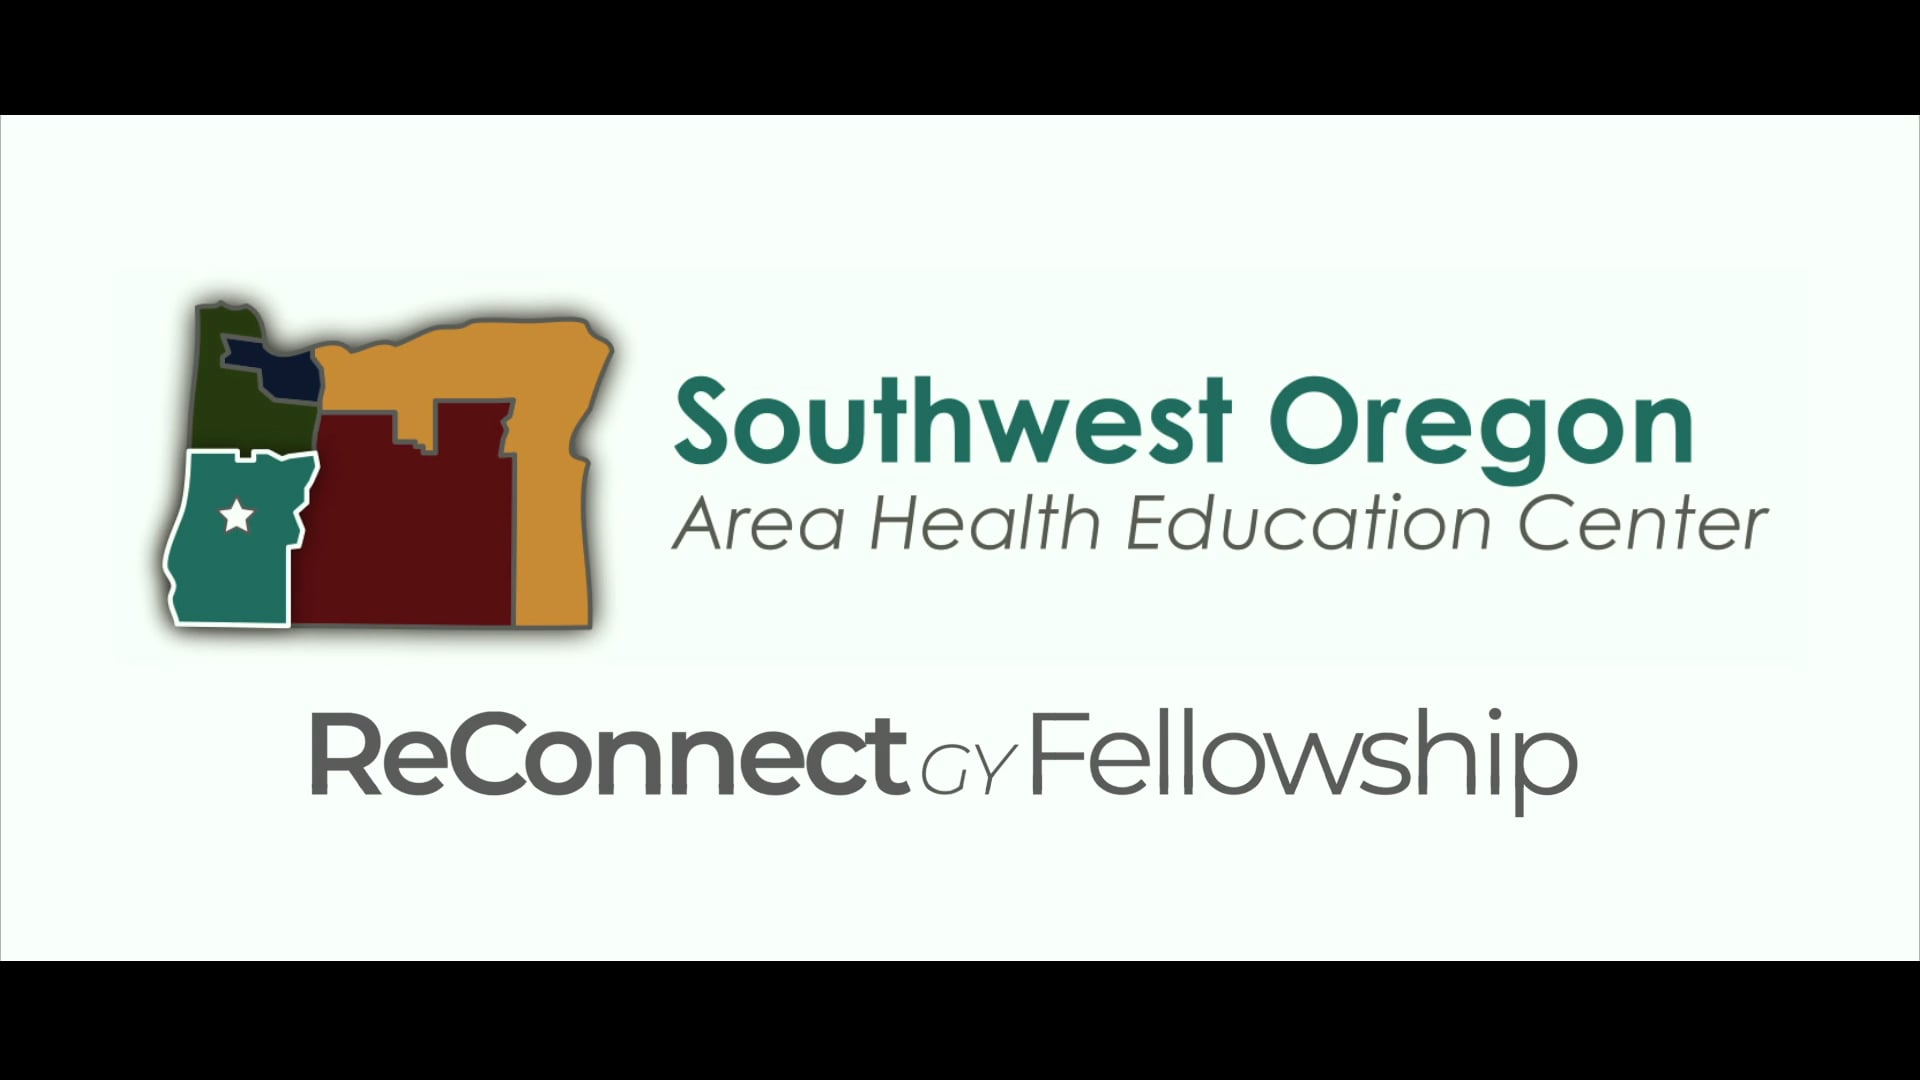 AHECSW RECONNECT GY FELLOWSHIP